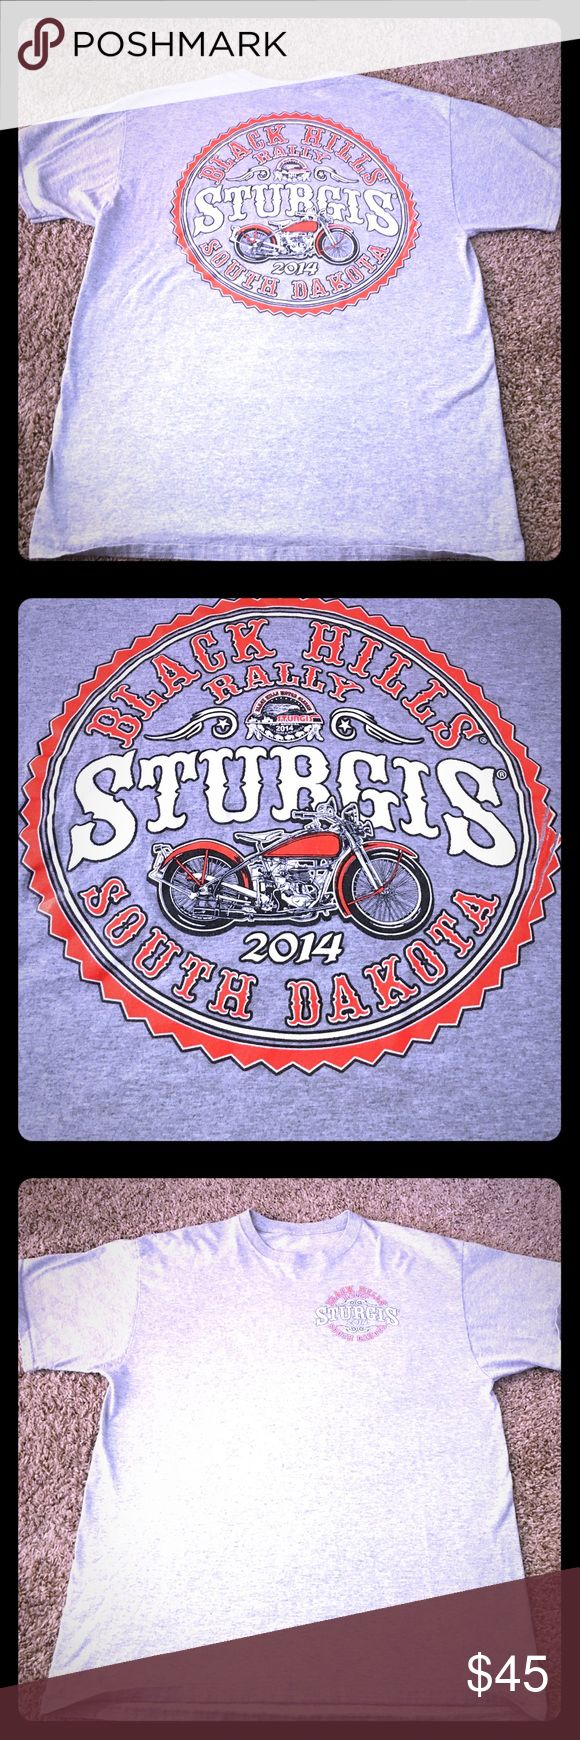 LIMITED EDITION 2014 Sturgis Black Hills Tee Limited Edition 2014 Black Hills Rally Sturgis Tee from South Dakota. This Harley Davidson Rally Tee was never worn and is a size XL in men's. It is in excellent condition. Harley-Davidson Shirts Tees - Short Sleeve